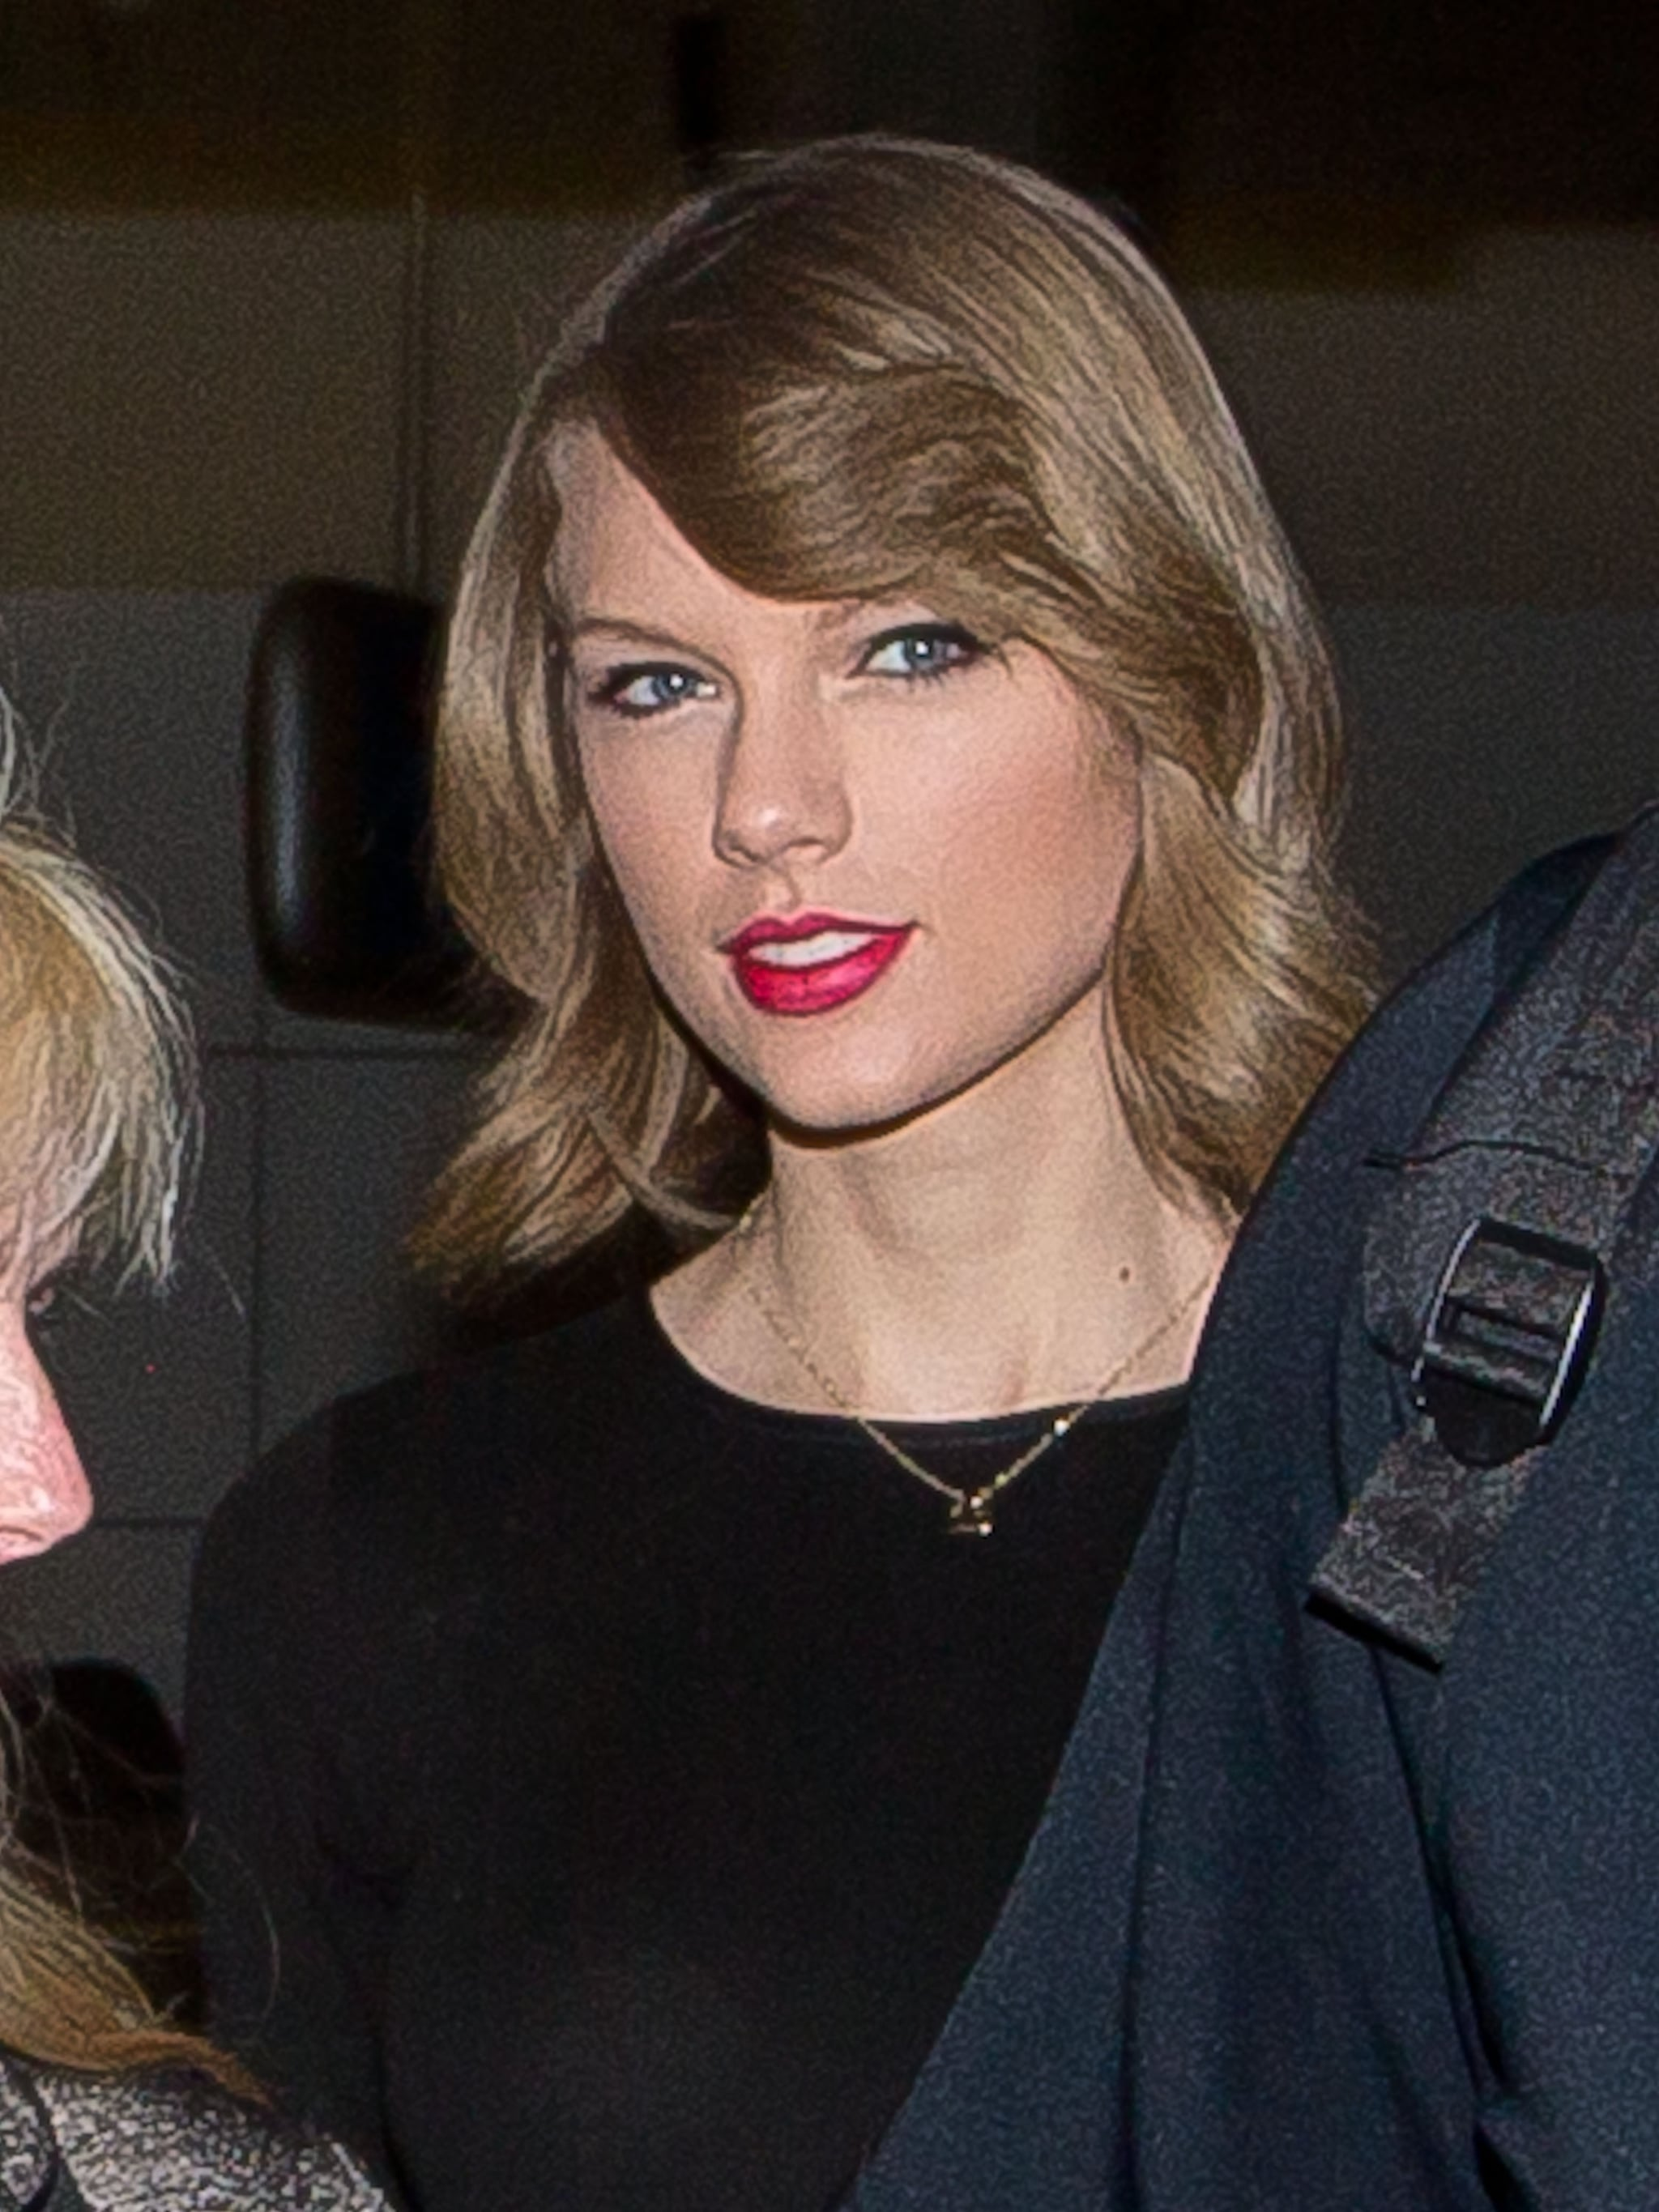 Pictures Of Taylor Swifts New Lob Haircut Popsugar Beauty Australia